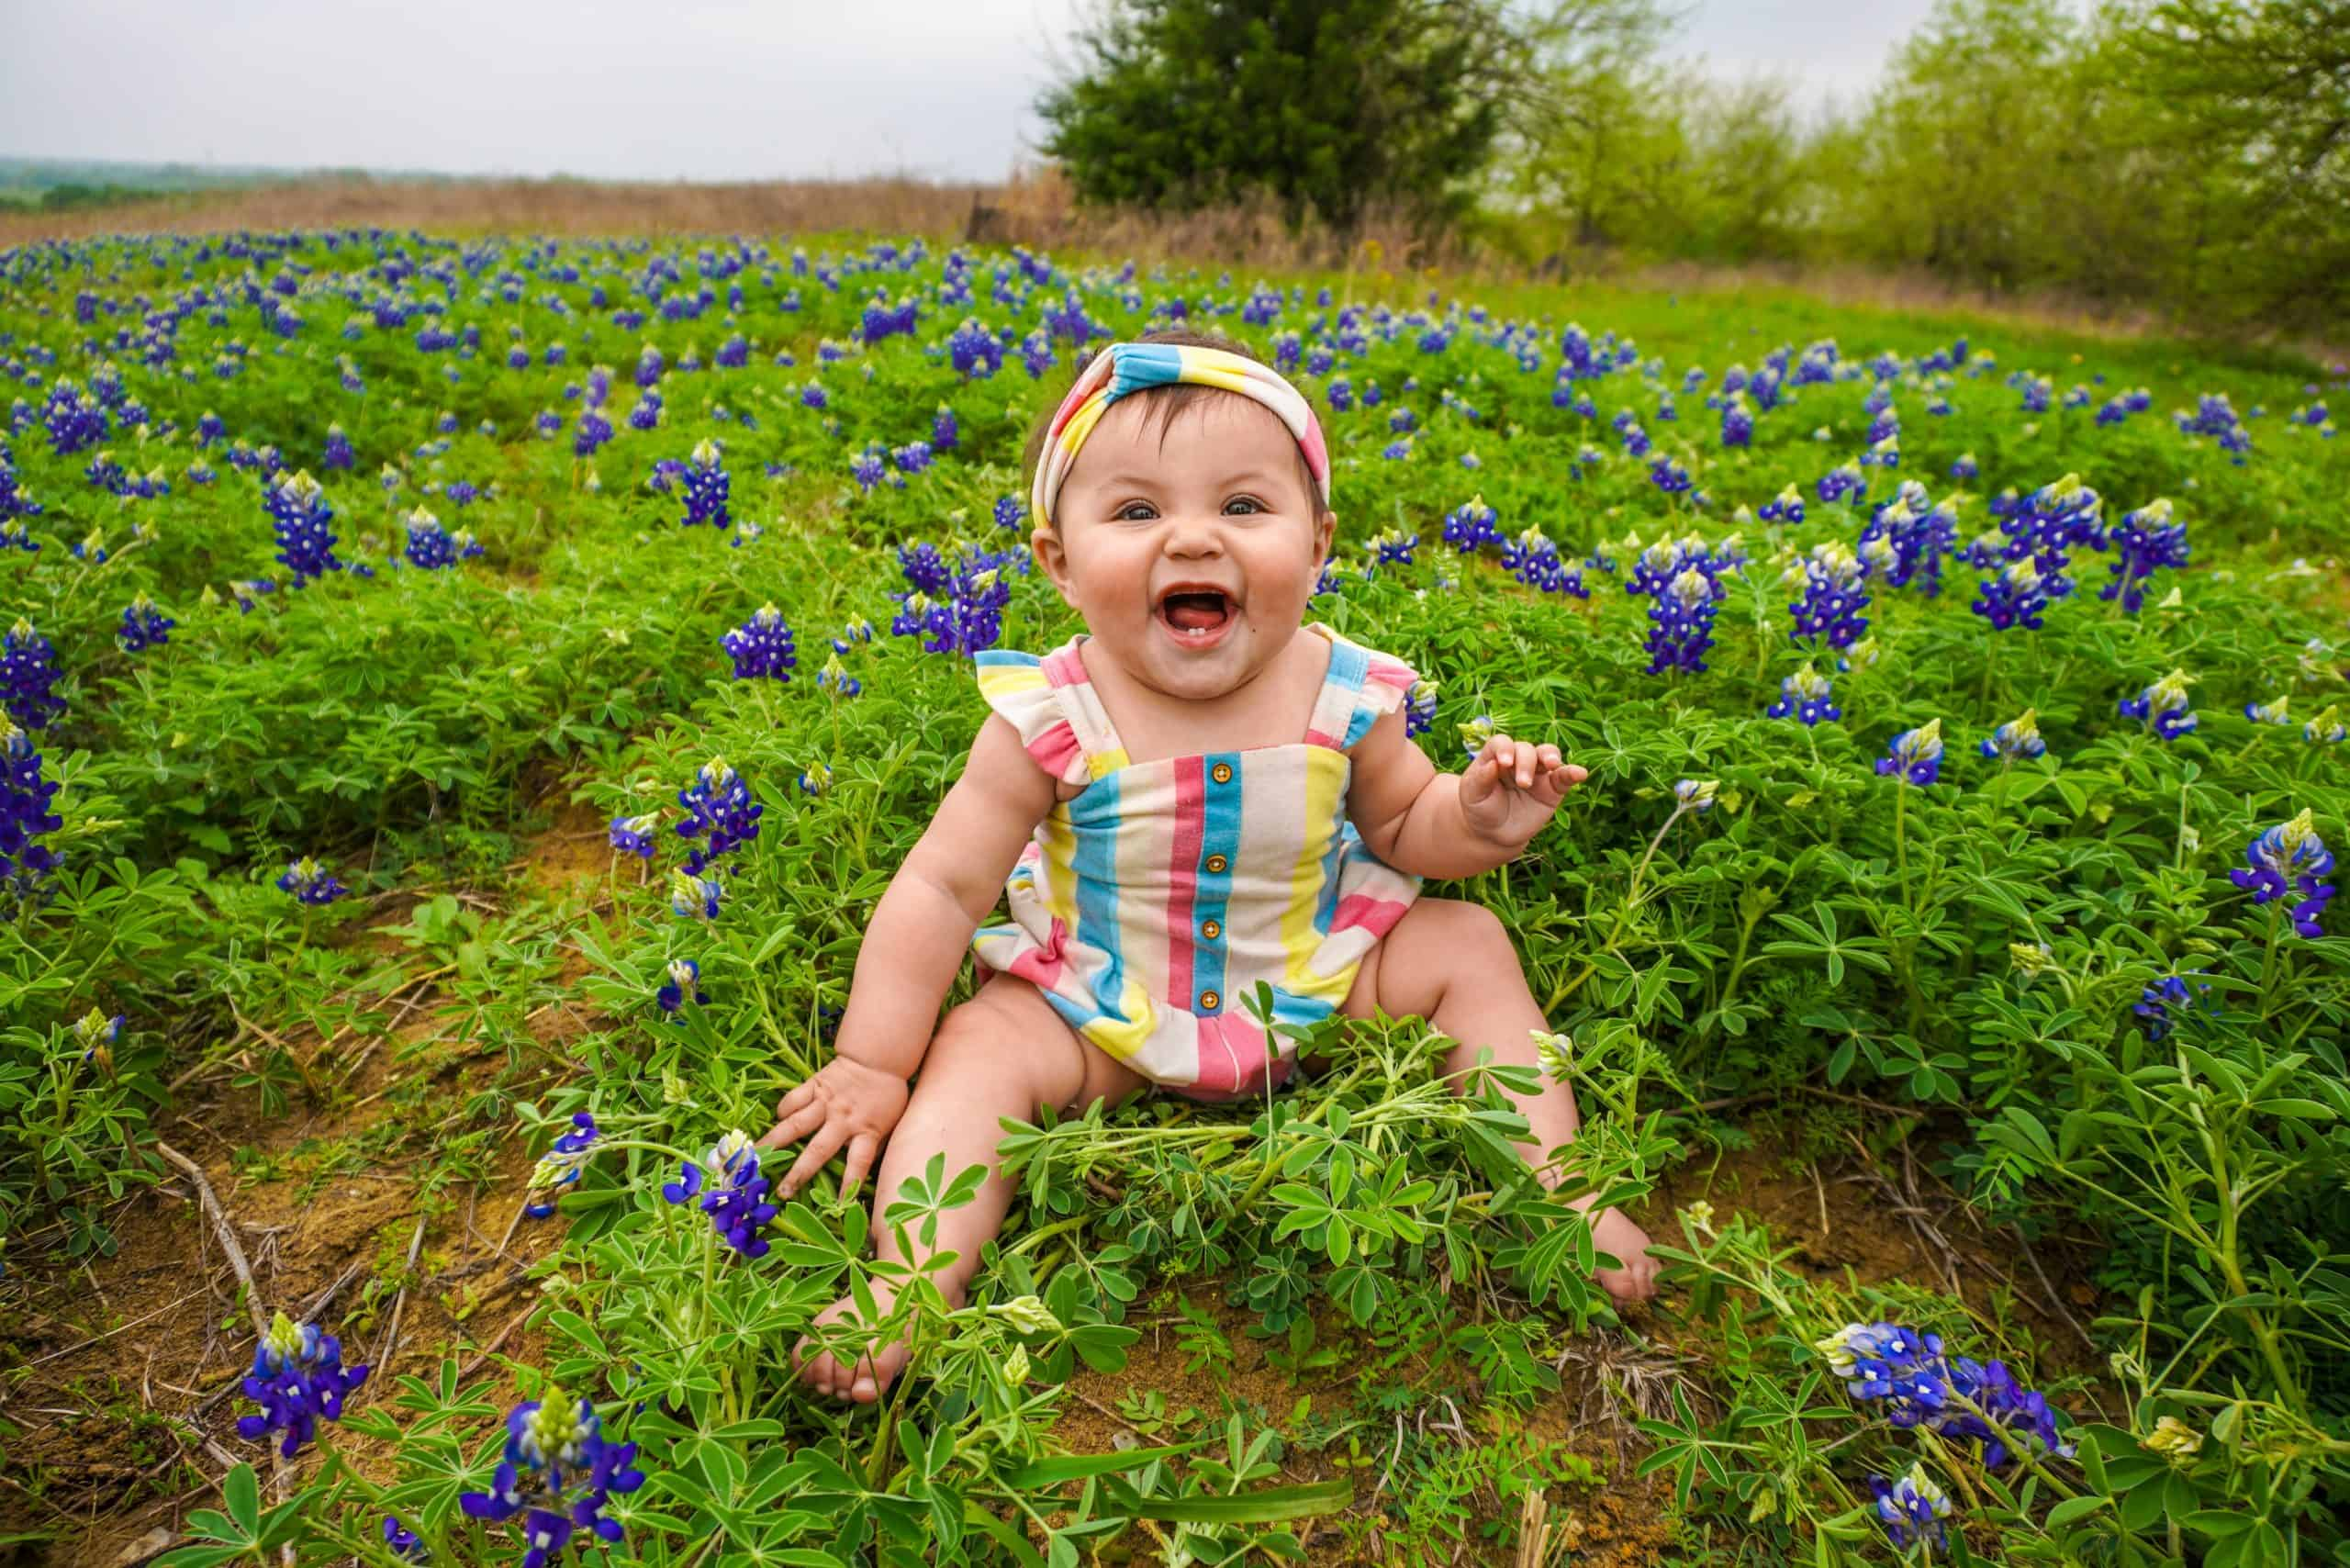 The Pros And Cons Of Cute Baby Outfits Girl: Do You Really Need It?